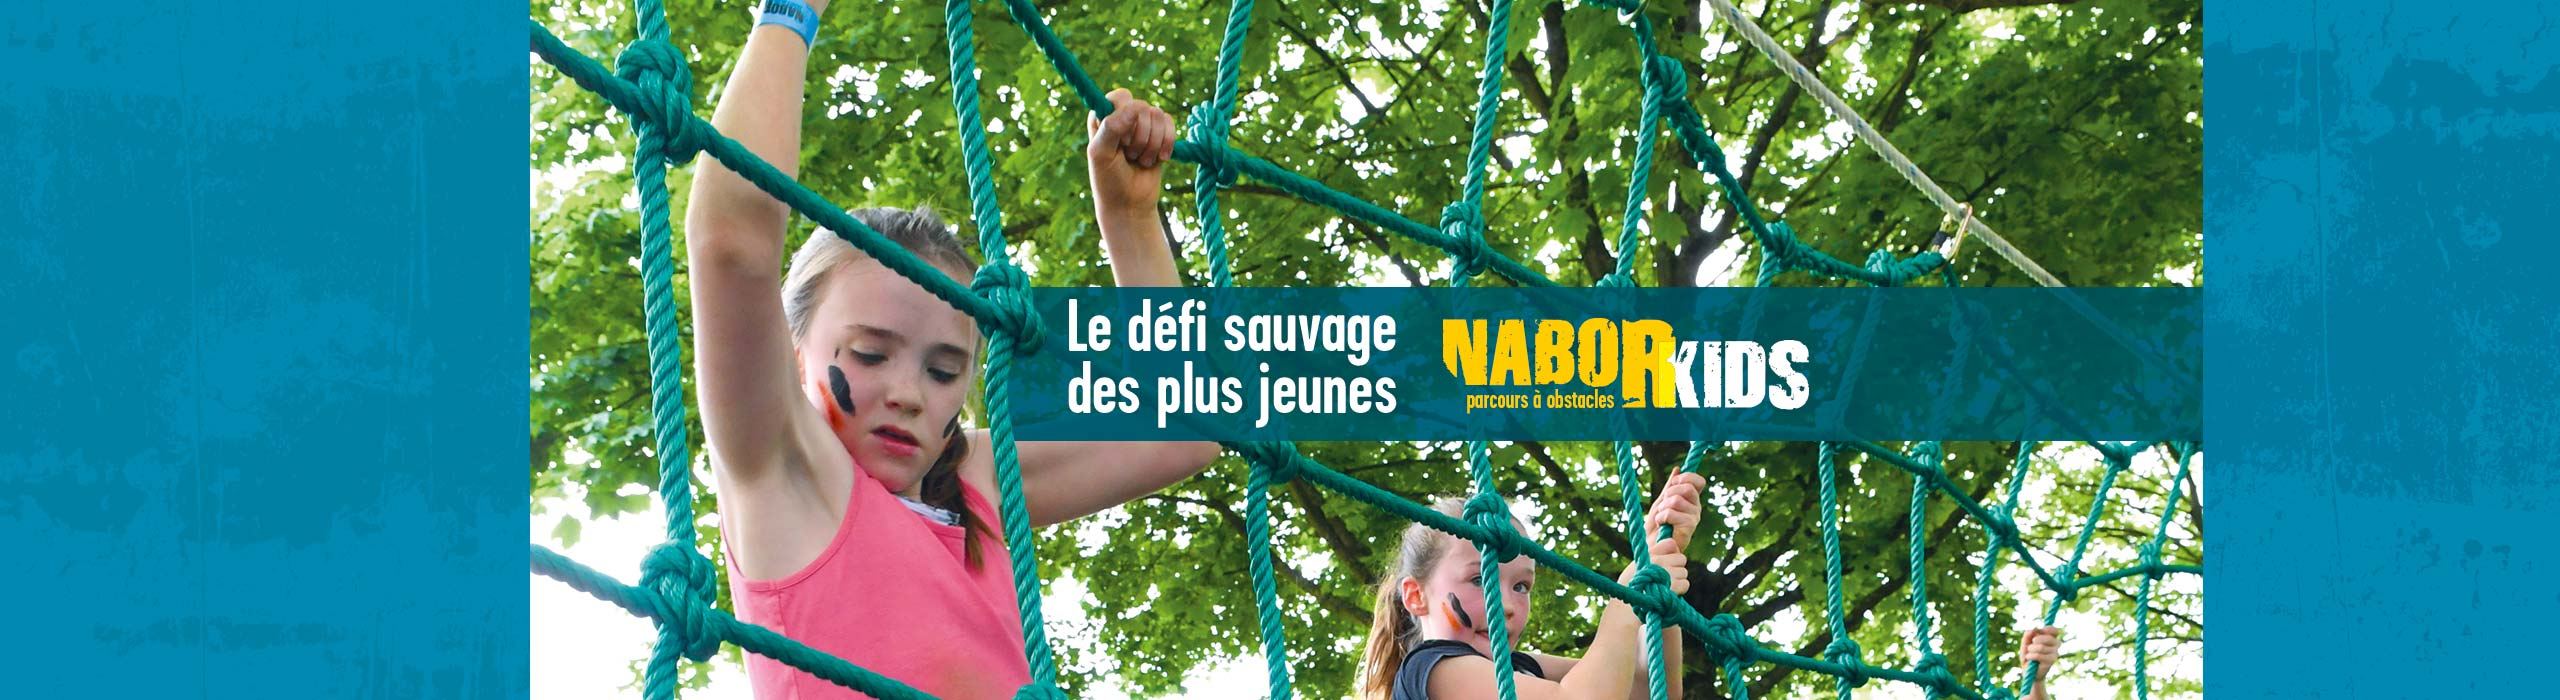 Annonce-naborKids